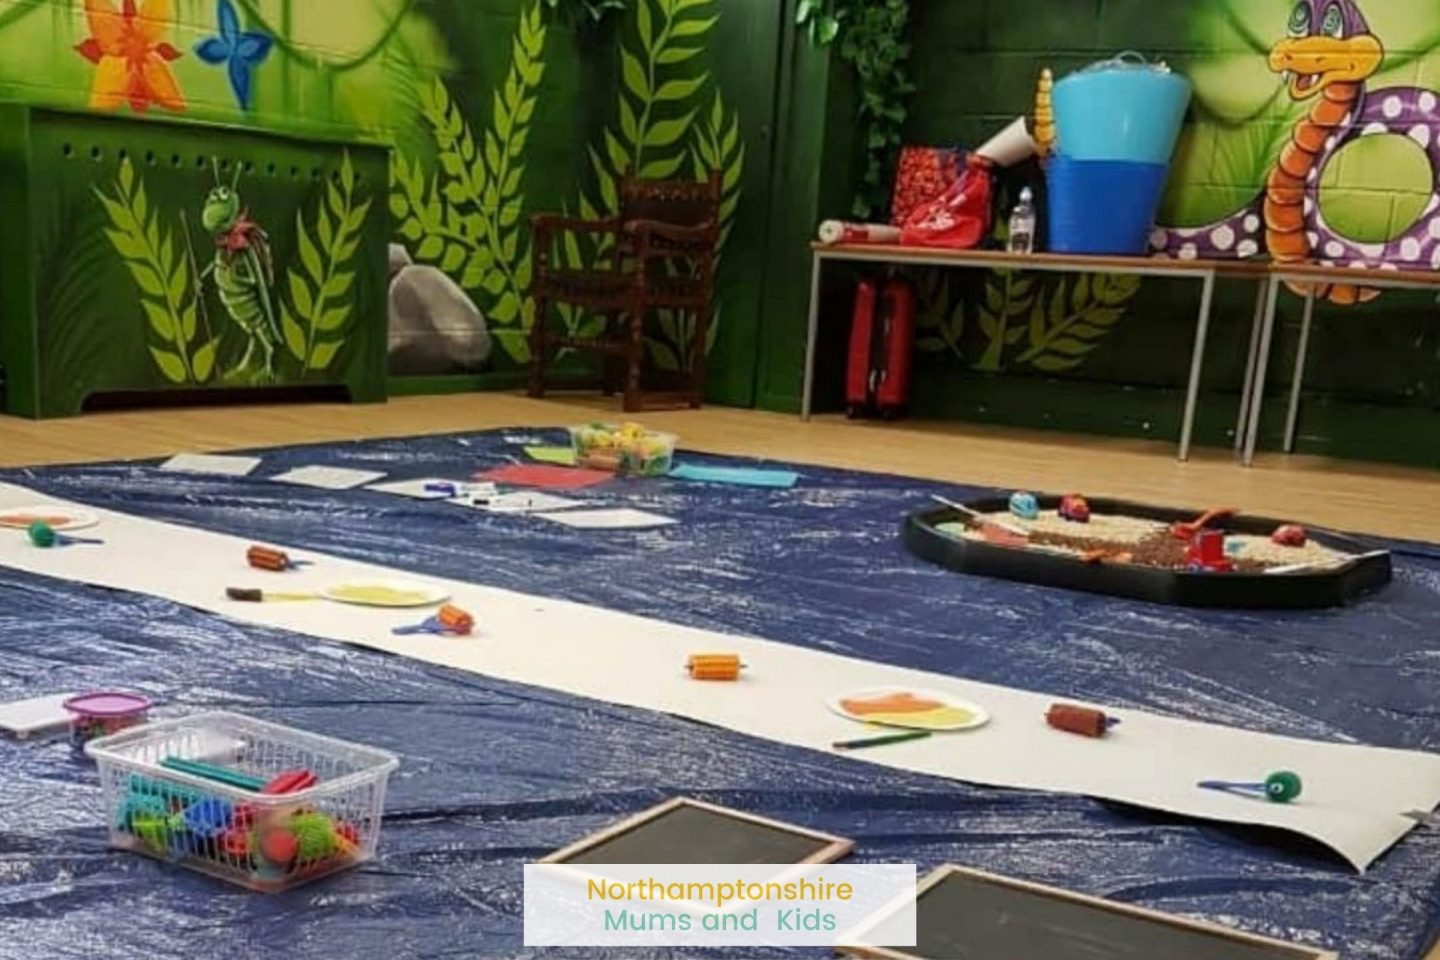 A list of Mum and baby groups in Northampton, Daventry, Wellingborough, Kettering and surrounding areas. Organised groups as well as libray sessions. For more ideas of things to do in Northants check out www.northamptonshiremumsandkids.co.uk